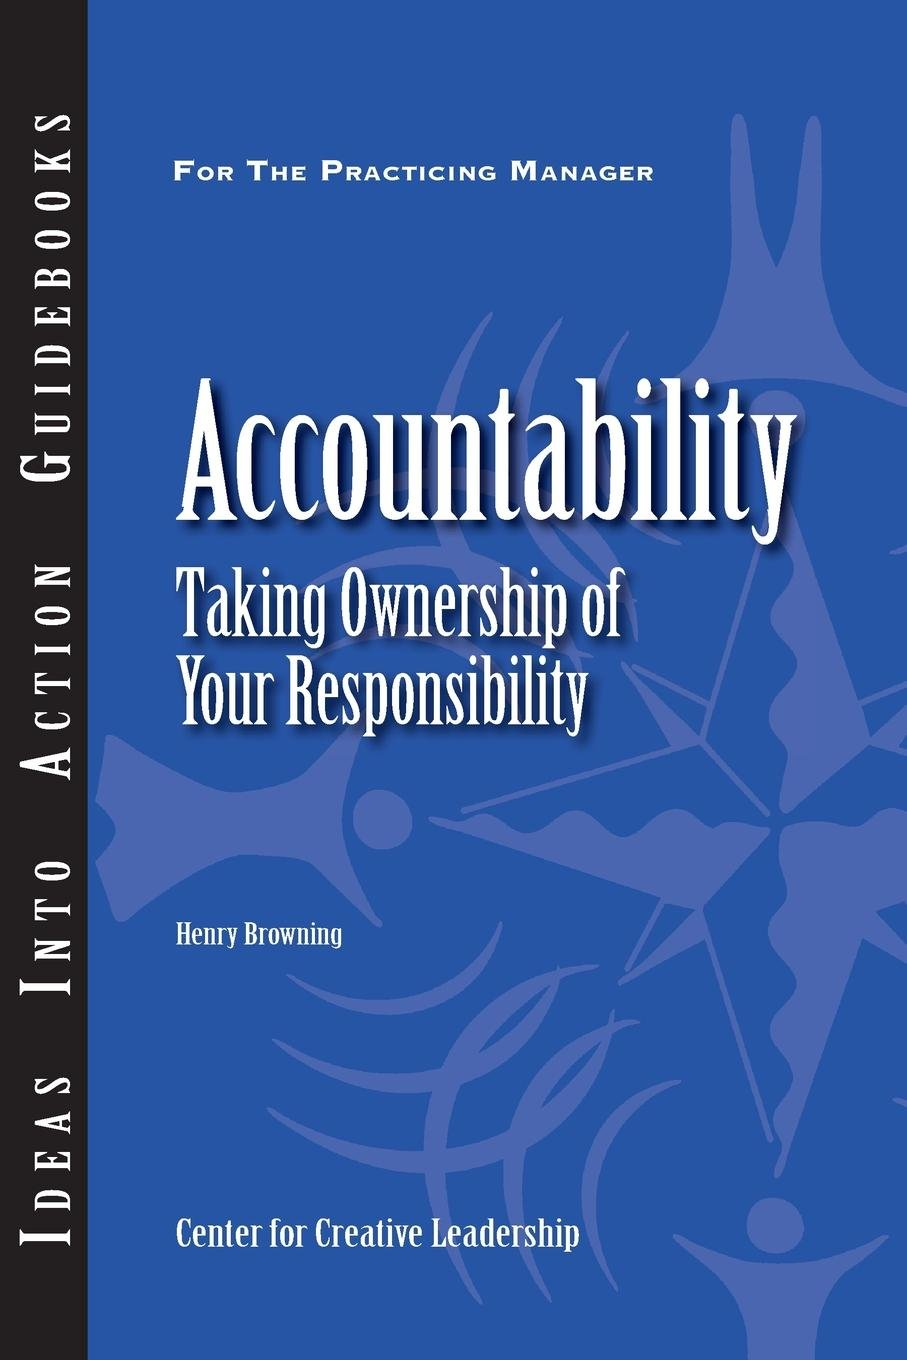 Accountability: Taking Ownership of Your Responsibility